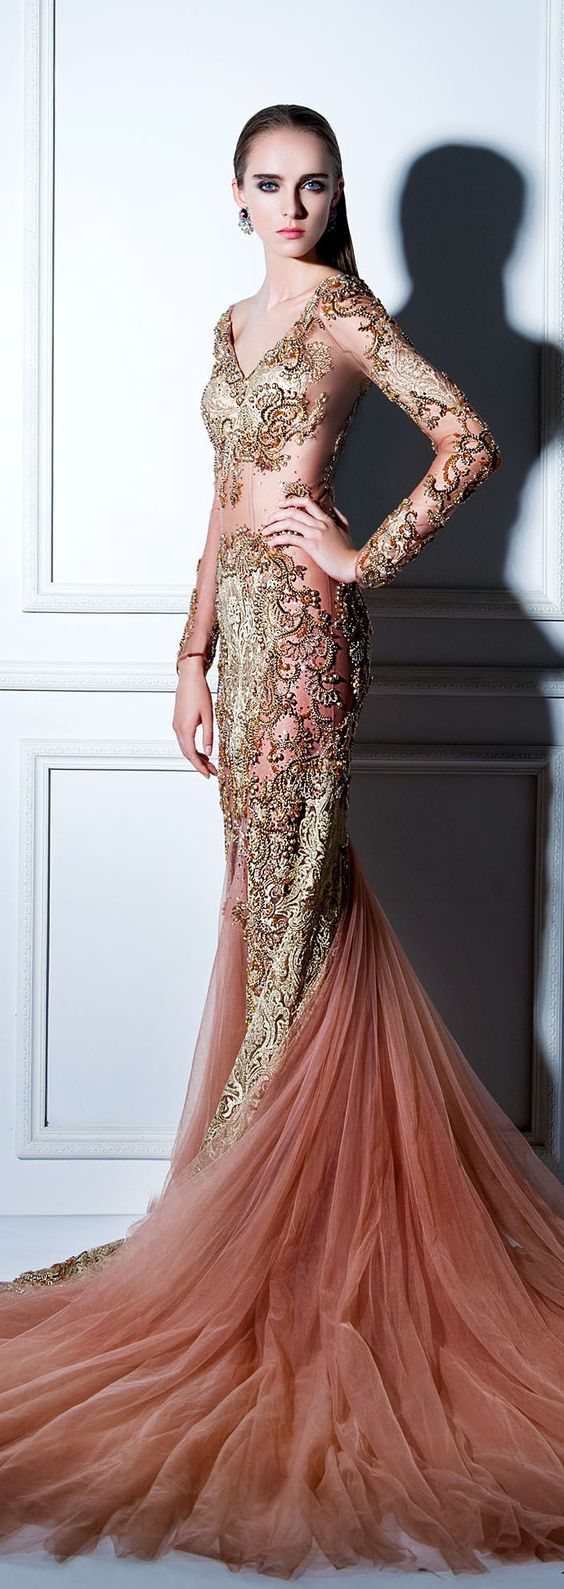 Dany Tabet Couture Fall/Winter 2014-2015: